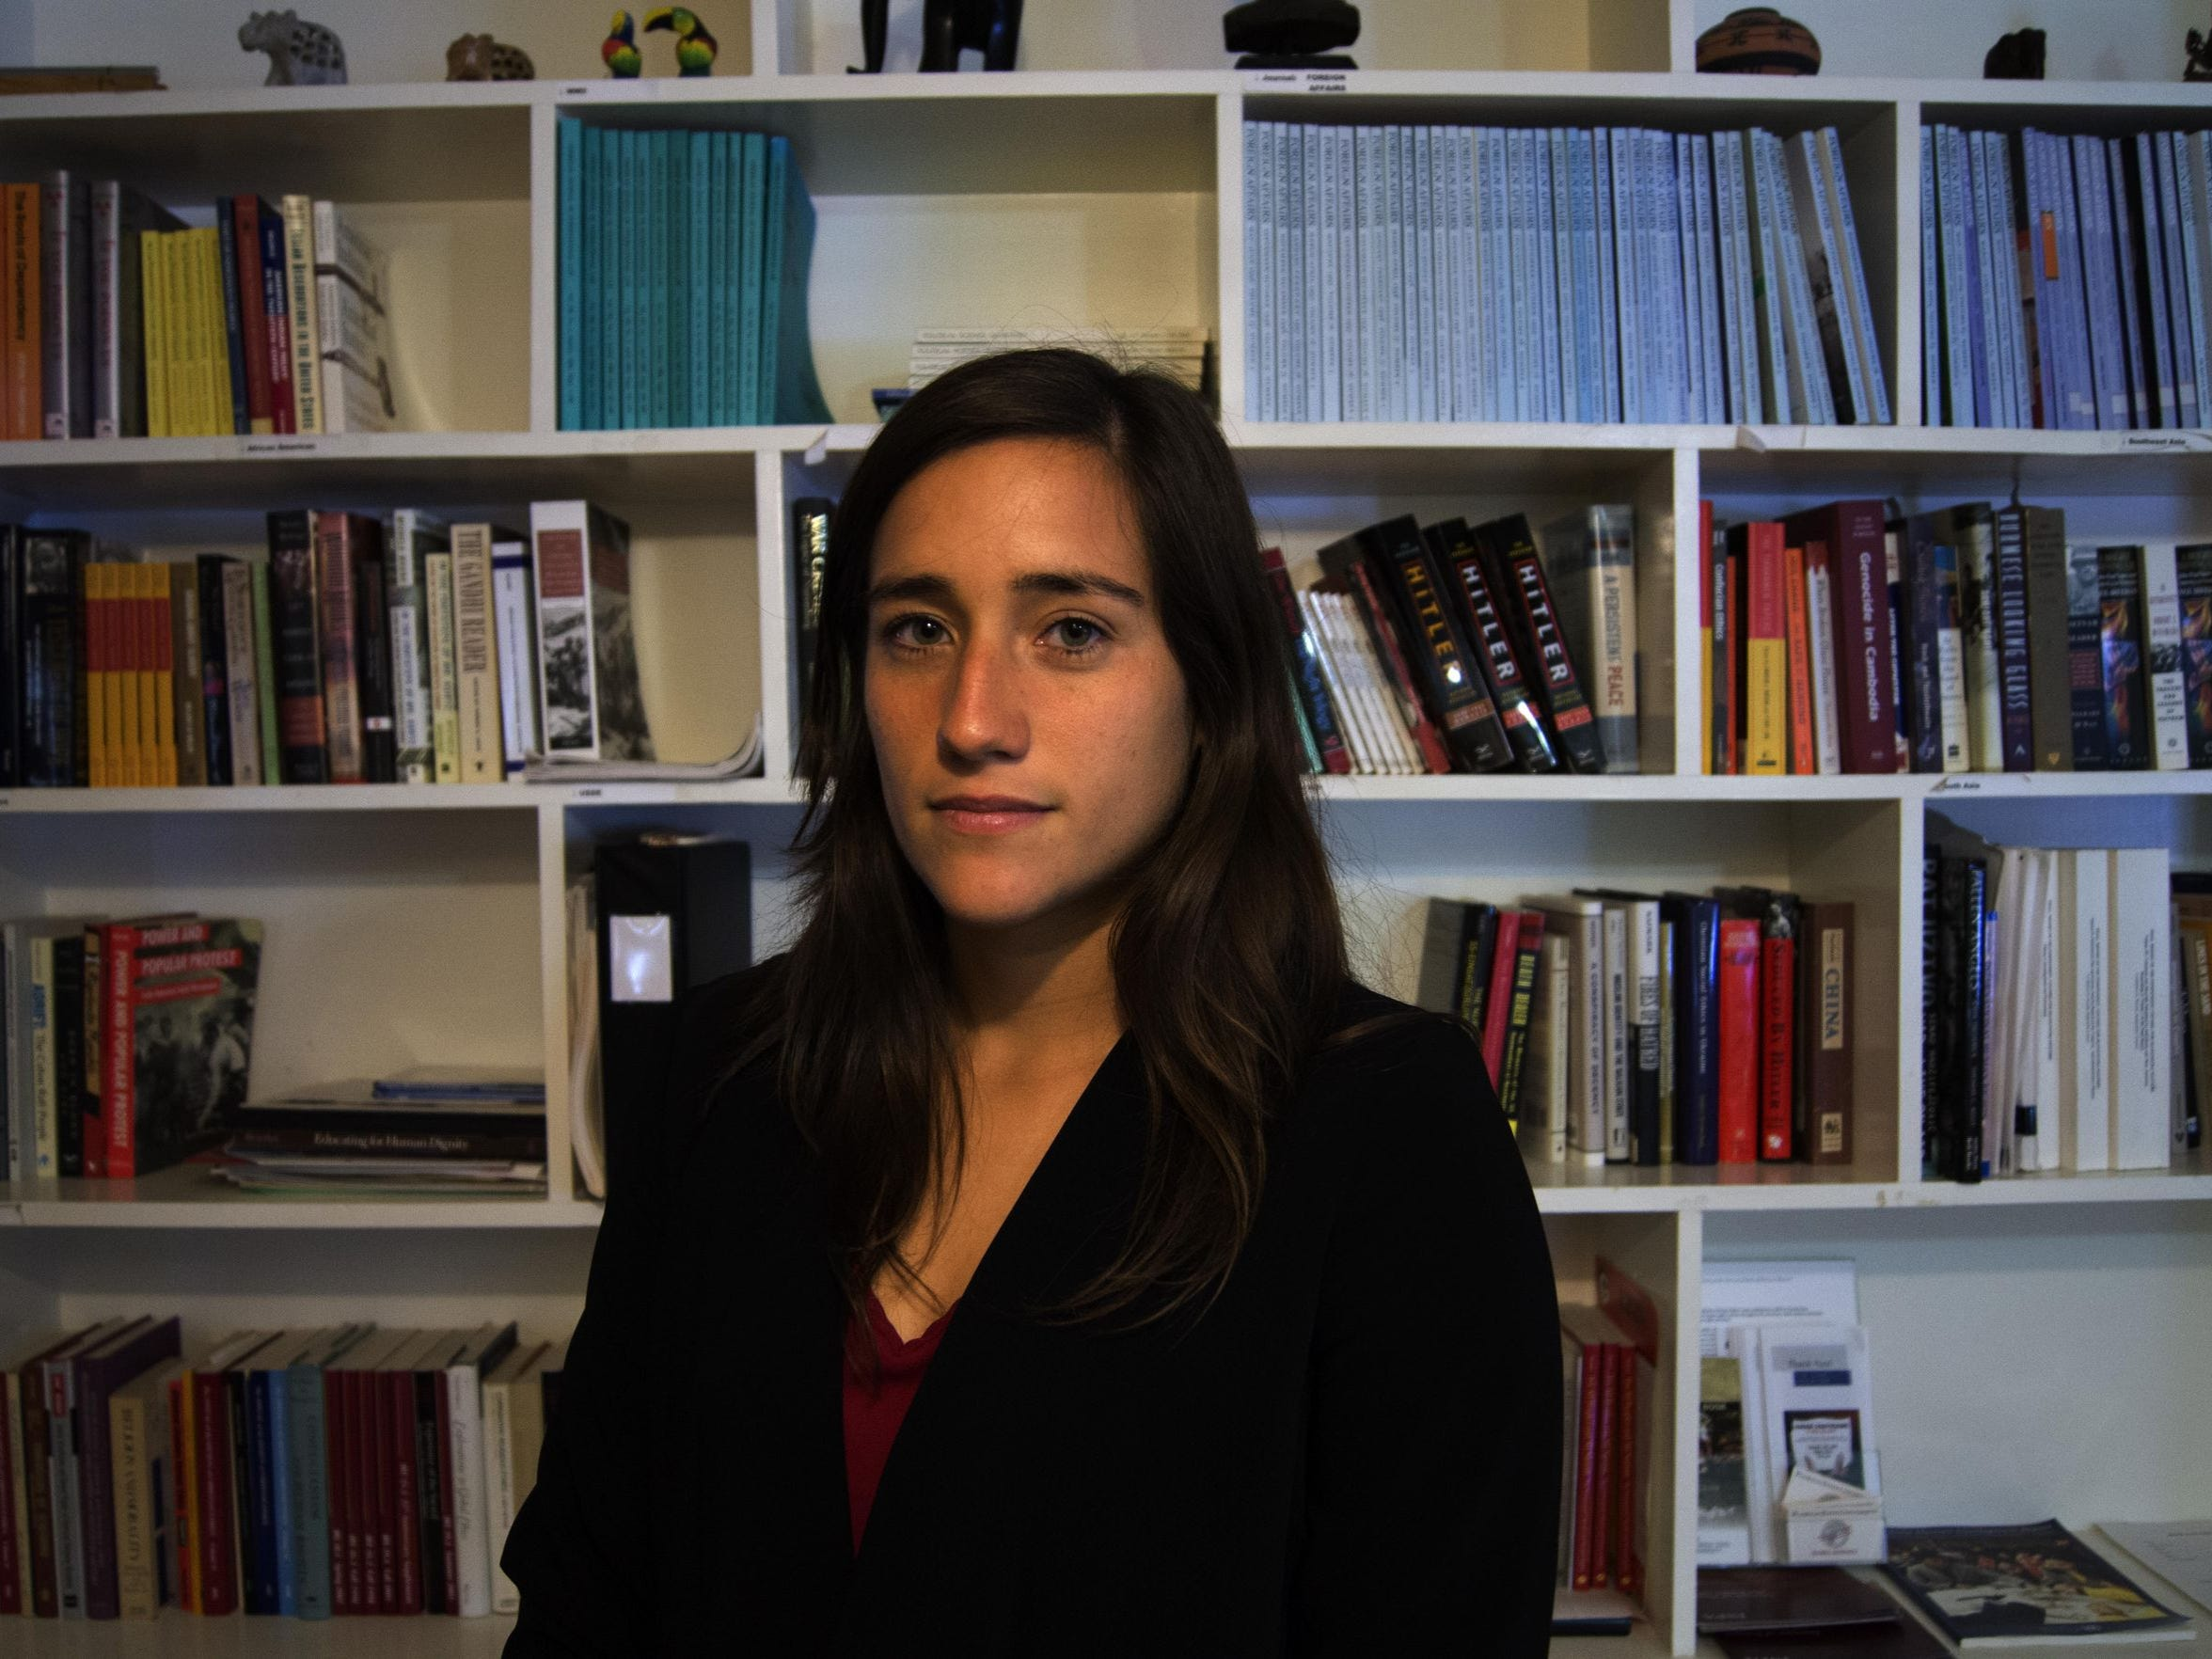 Daniela Donoso, who now works for the FSU Center for the Advancement of Human Rights, says that the insecurity of DACA threatens her life in the U.S.